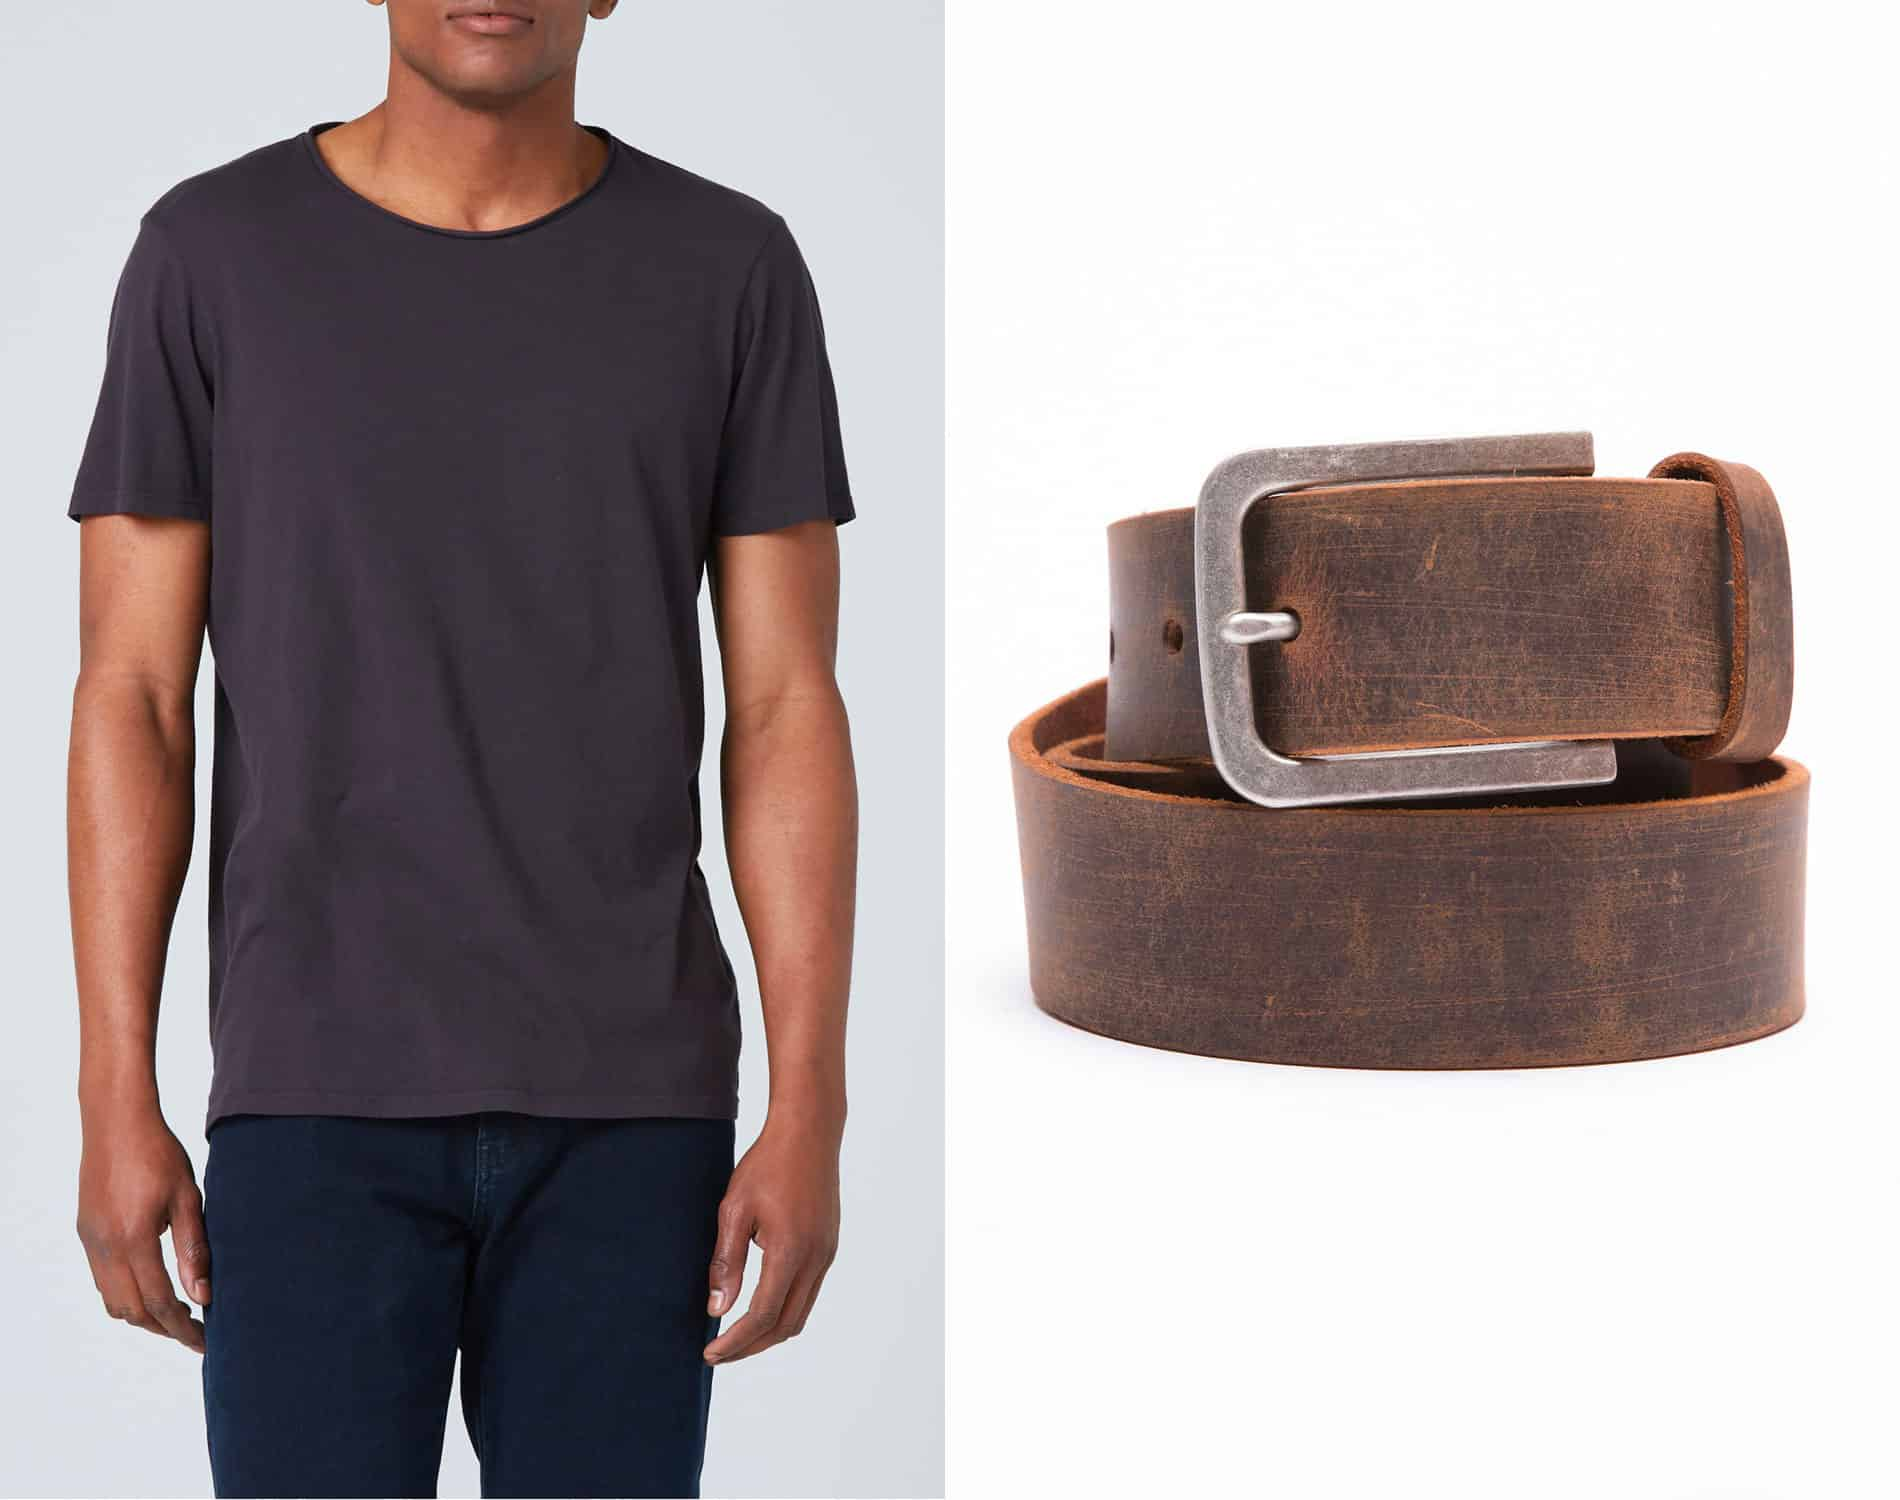 DSTLD tshirt and leather belt